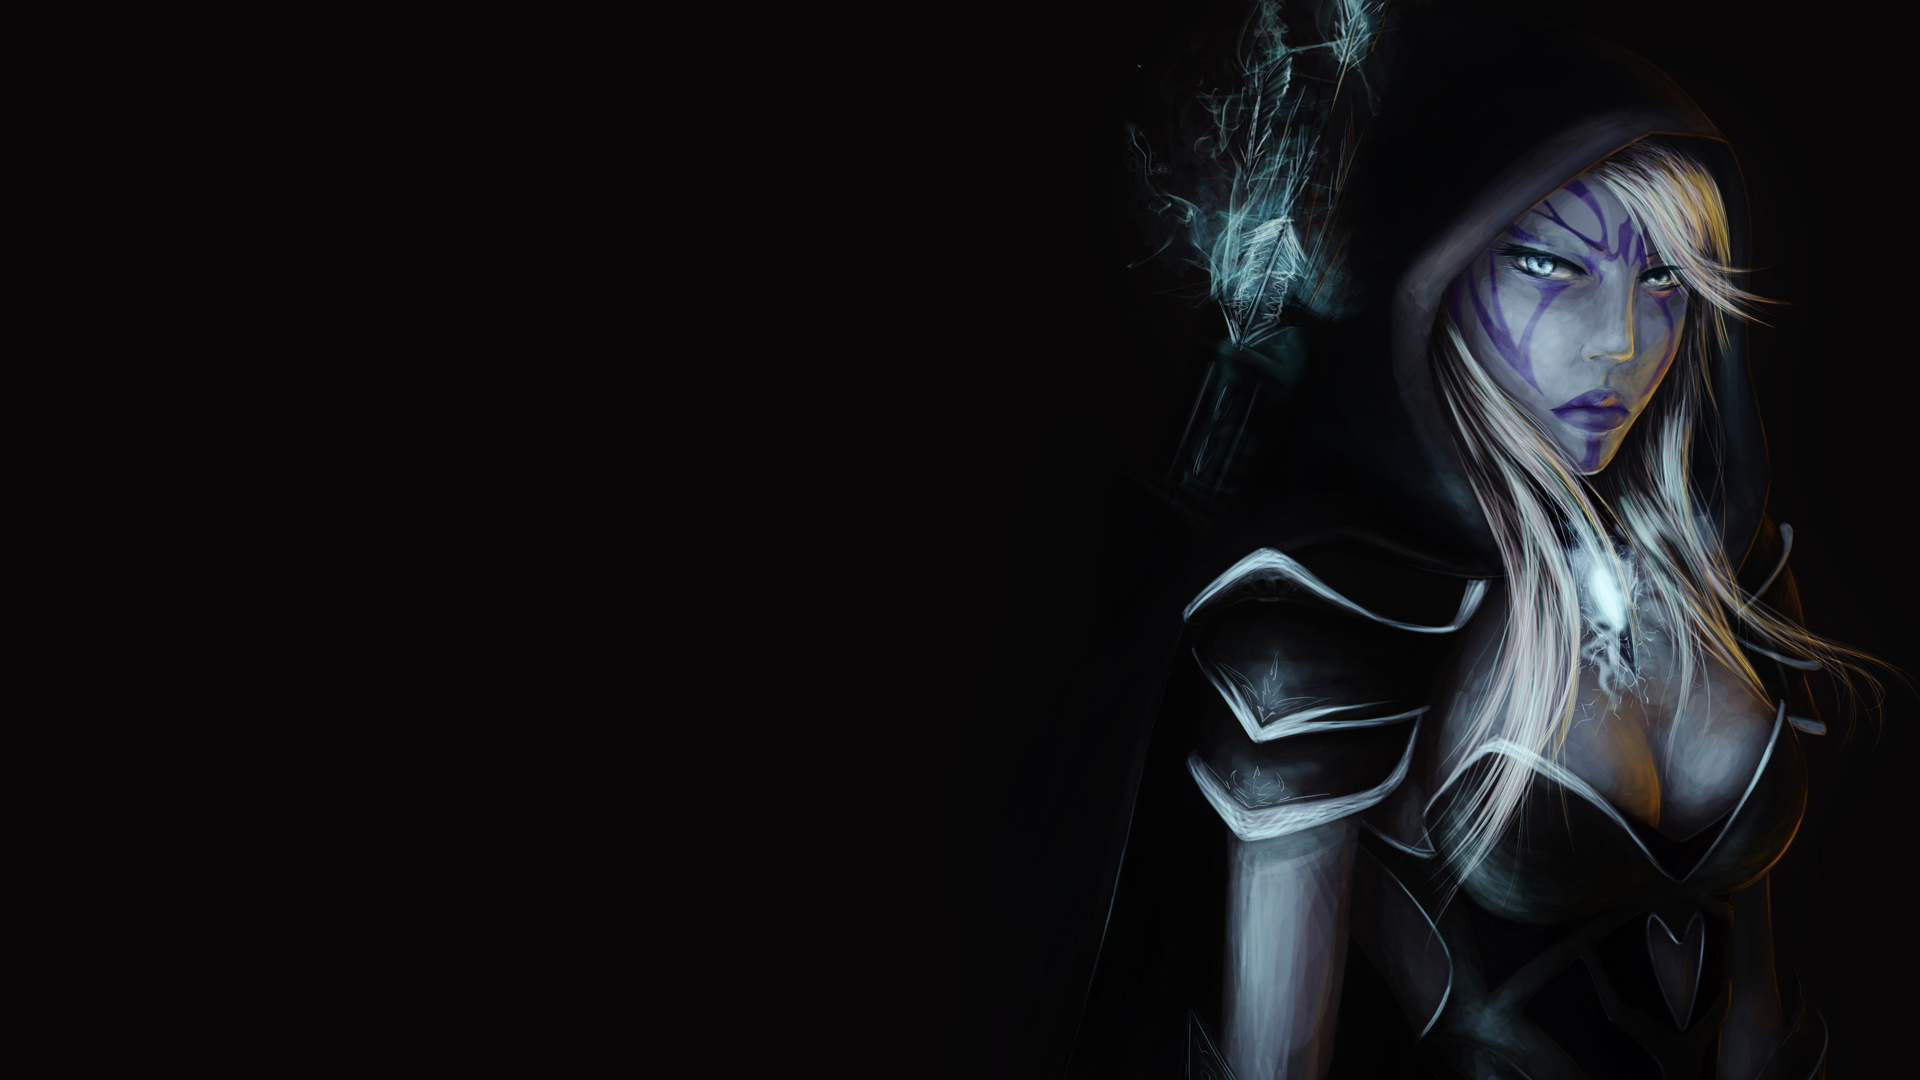 Dota 2 full hd wallpaper and background image 1920x1080 id387546 video game dota 2 wallpaper voltagebd Image collections